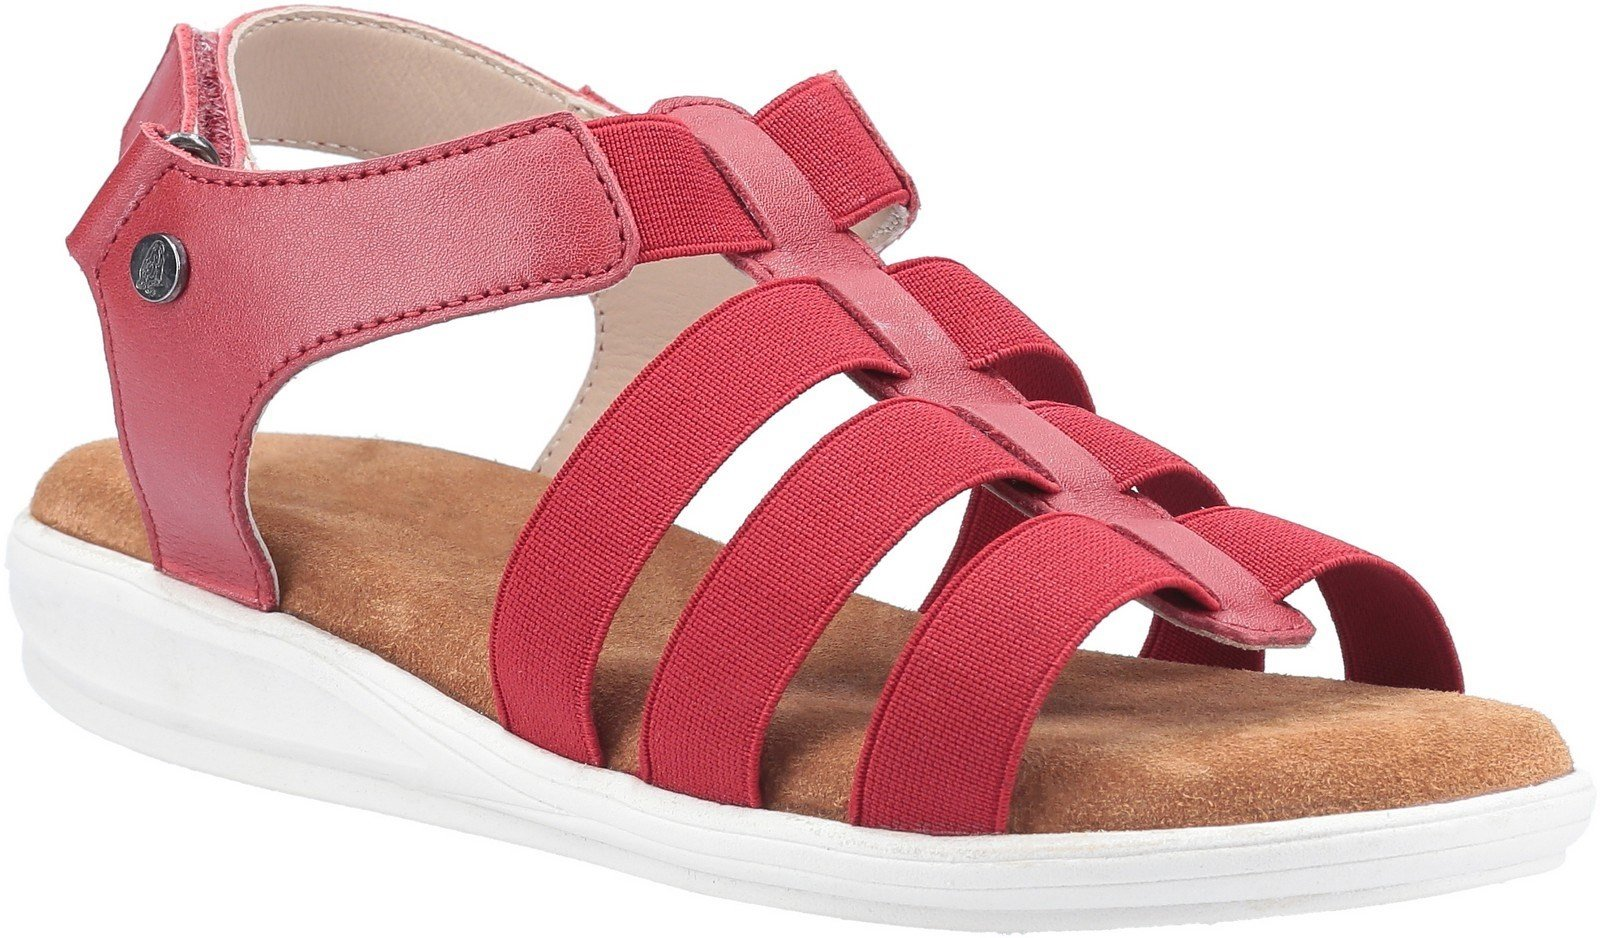 Hush Puppies Women's Hailey Gladiator Sandal Various Colours 30222 - Red 3